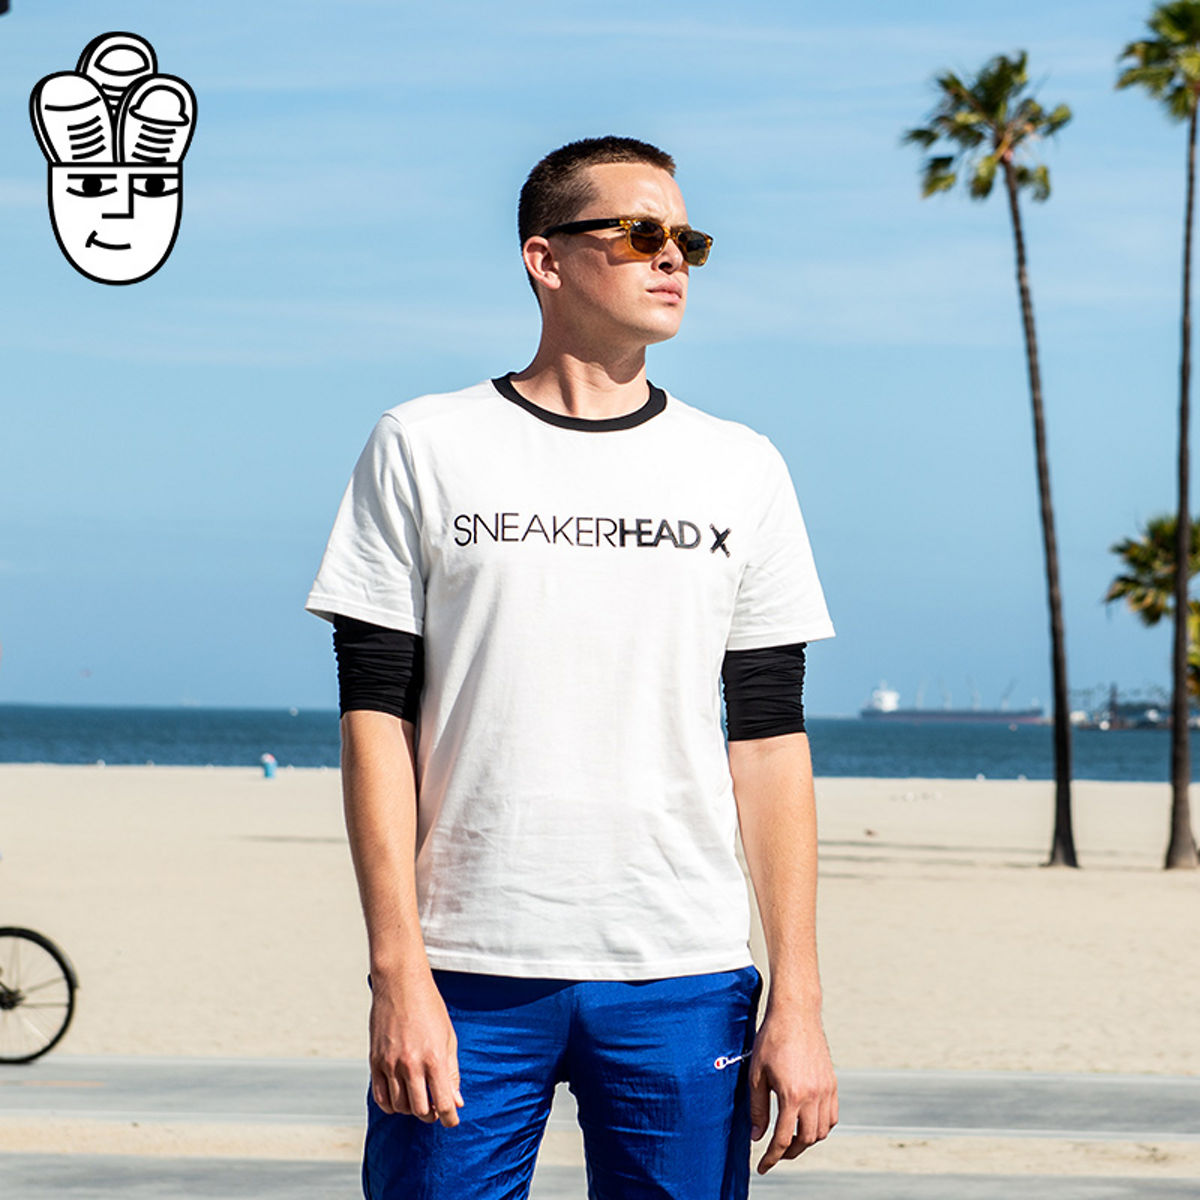 Sneakerhead X Mens T-shirt cotton casual fashion personality contrast stitching crew neck letter fake two pieces